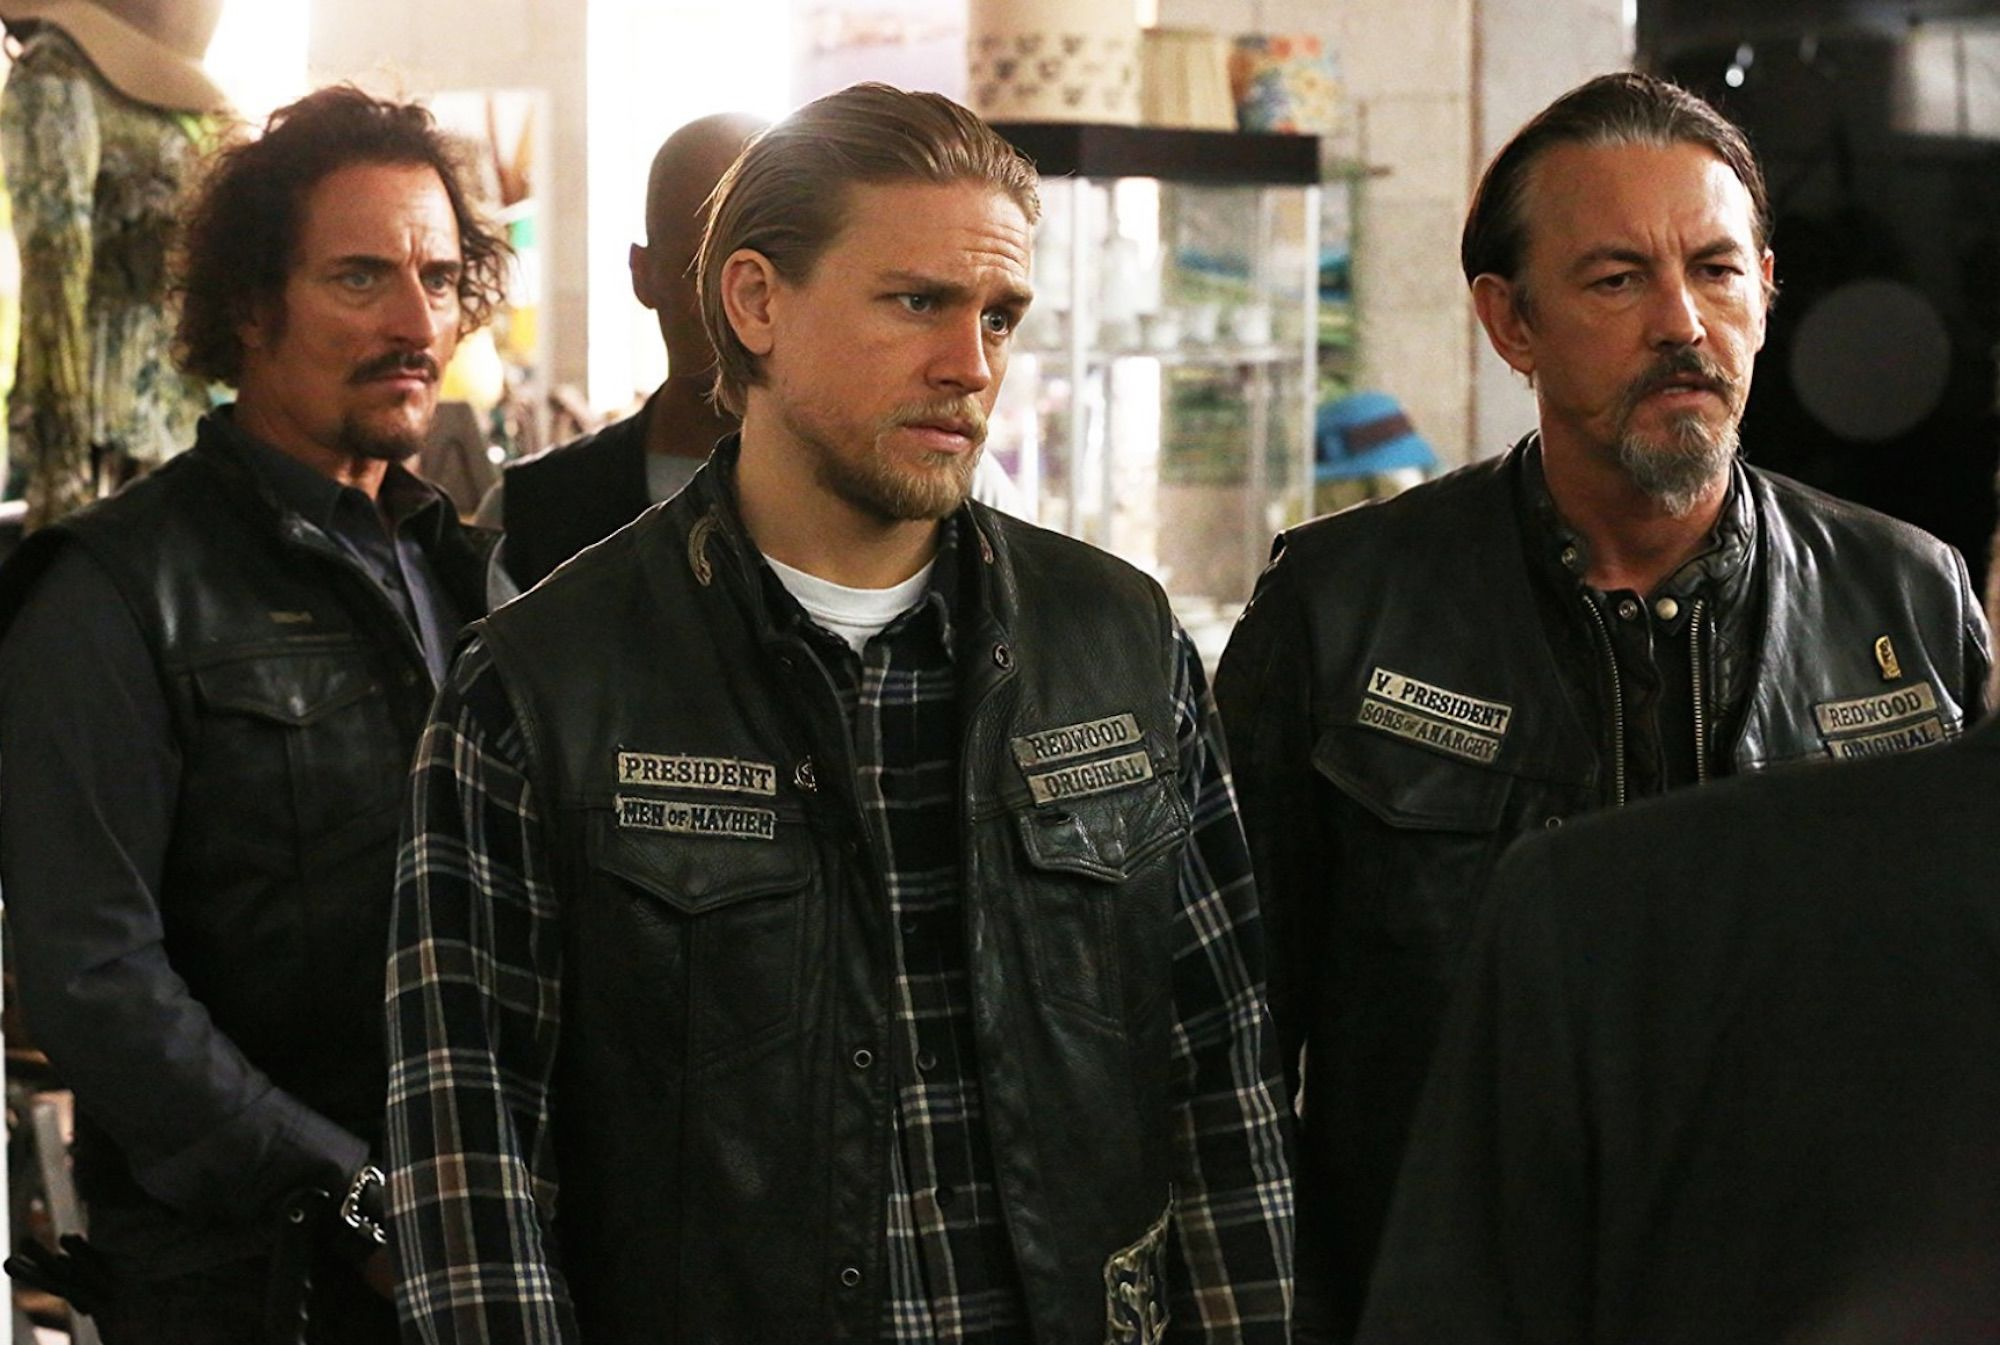 Anarchy Nation Pictures 10 wild facts about sons of anarchy | mental floss